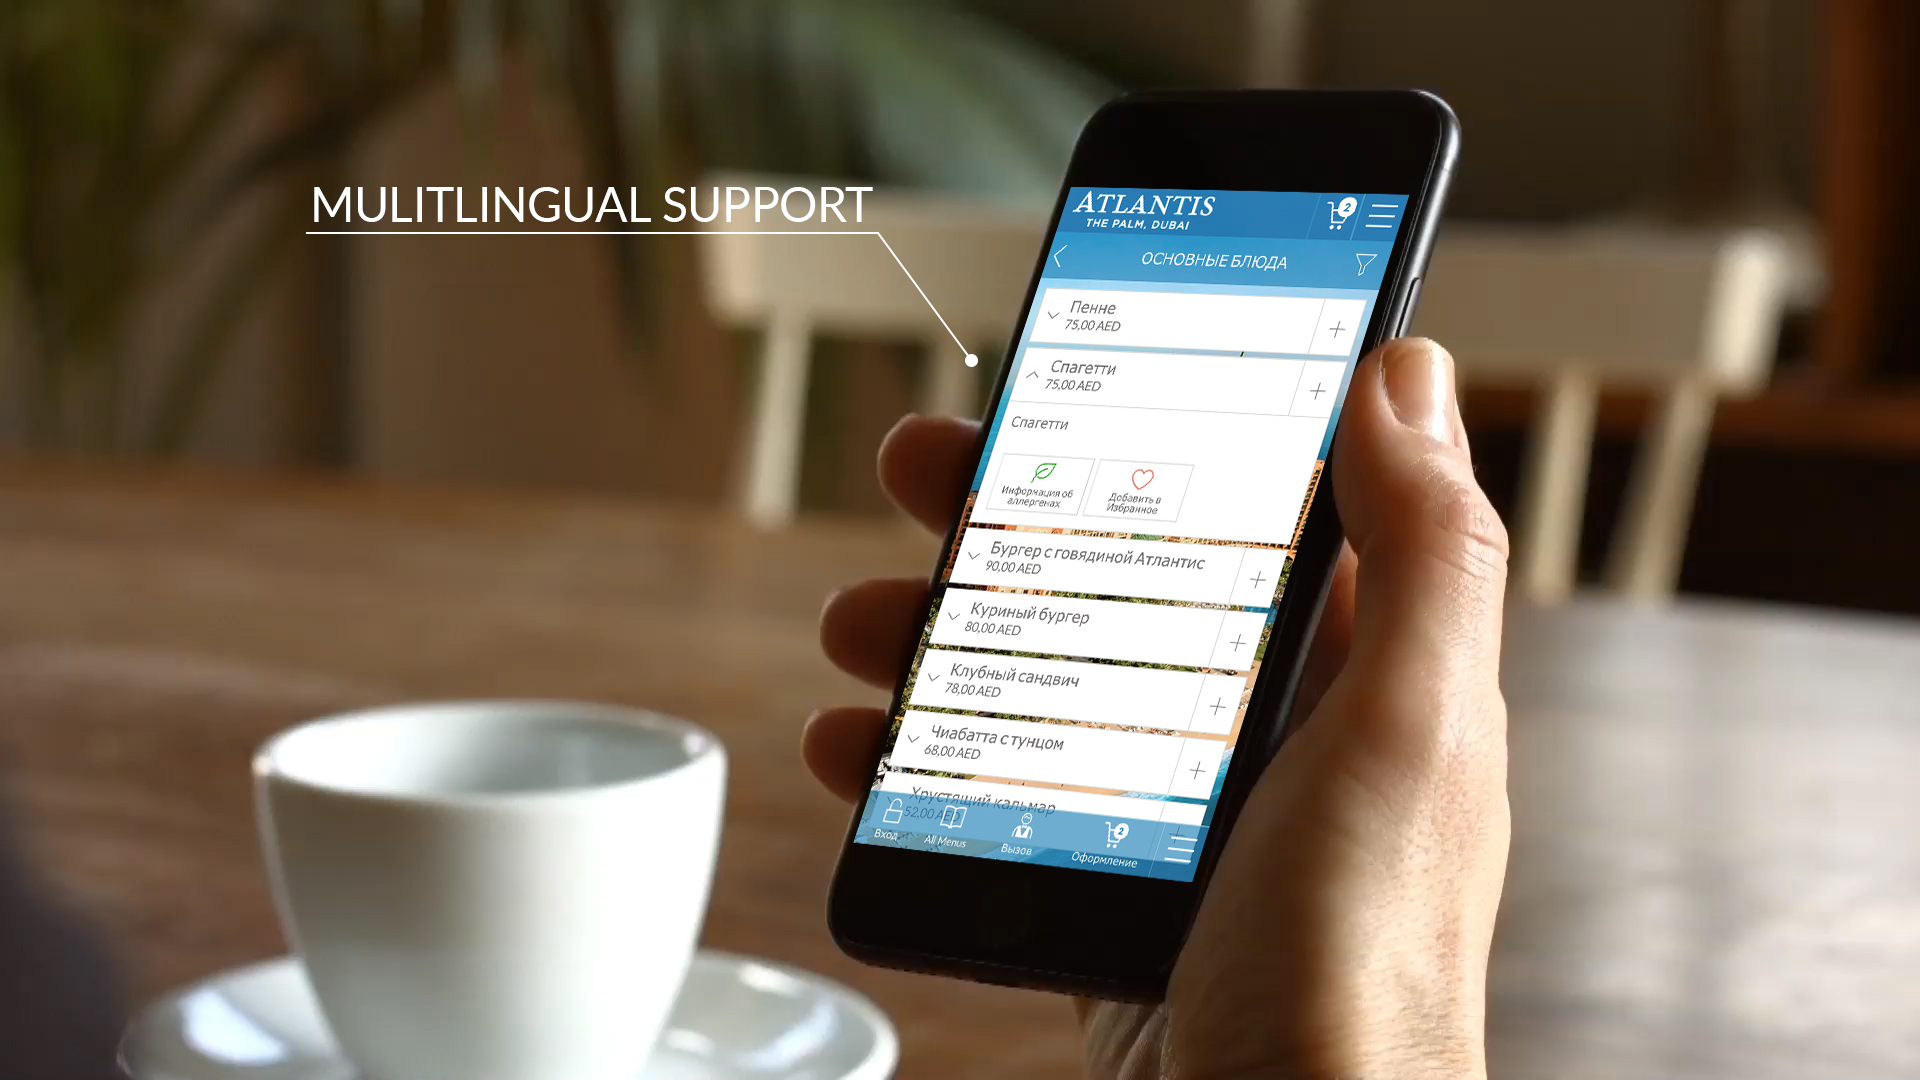 Atlantis Hotel Multilingual Support